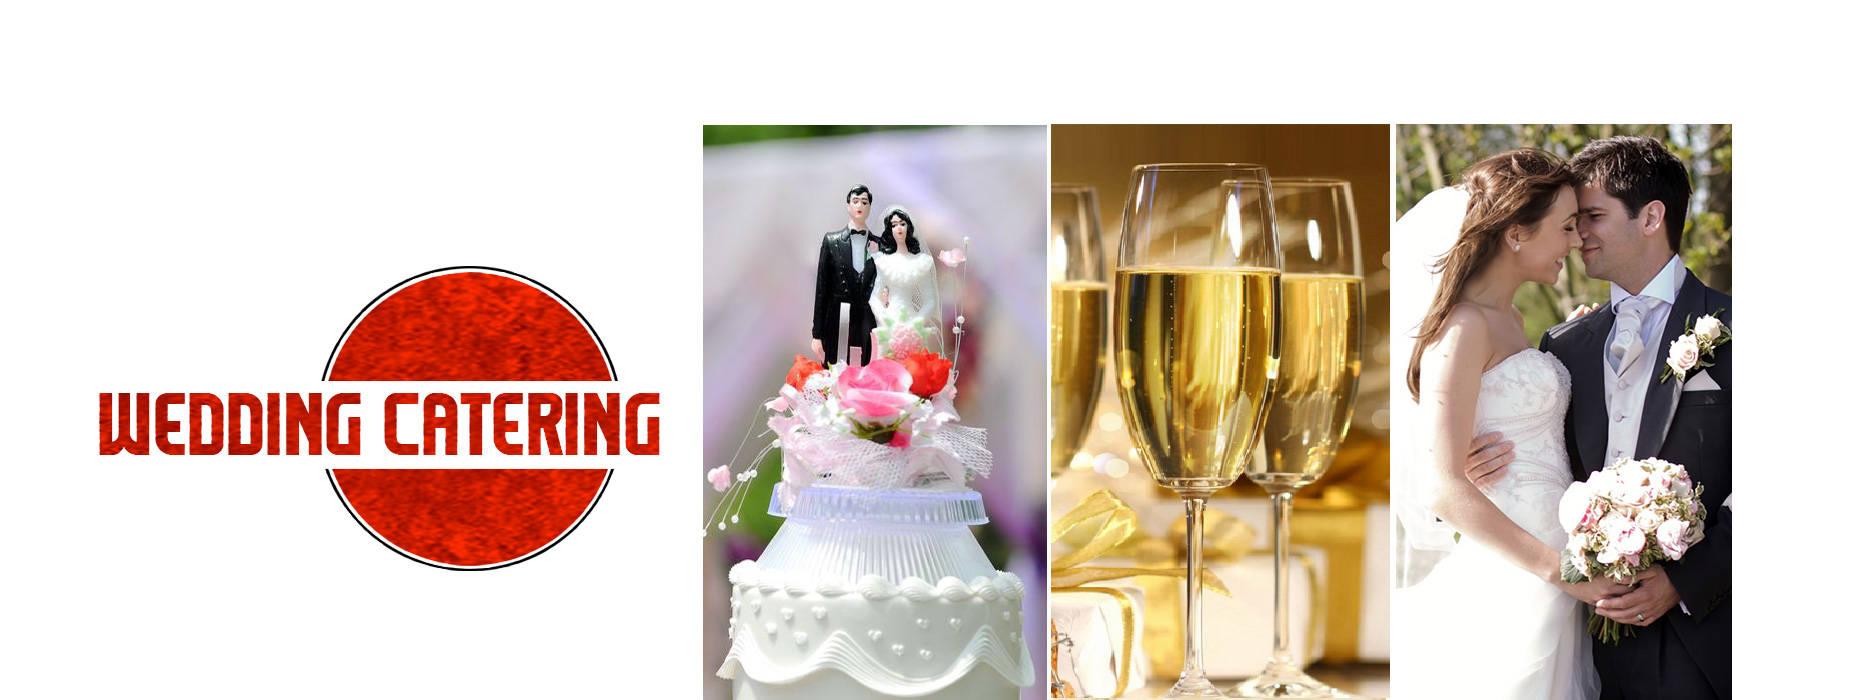 Wedding Catering